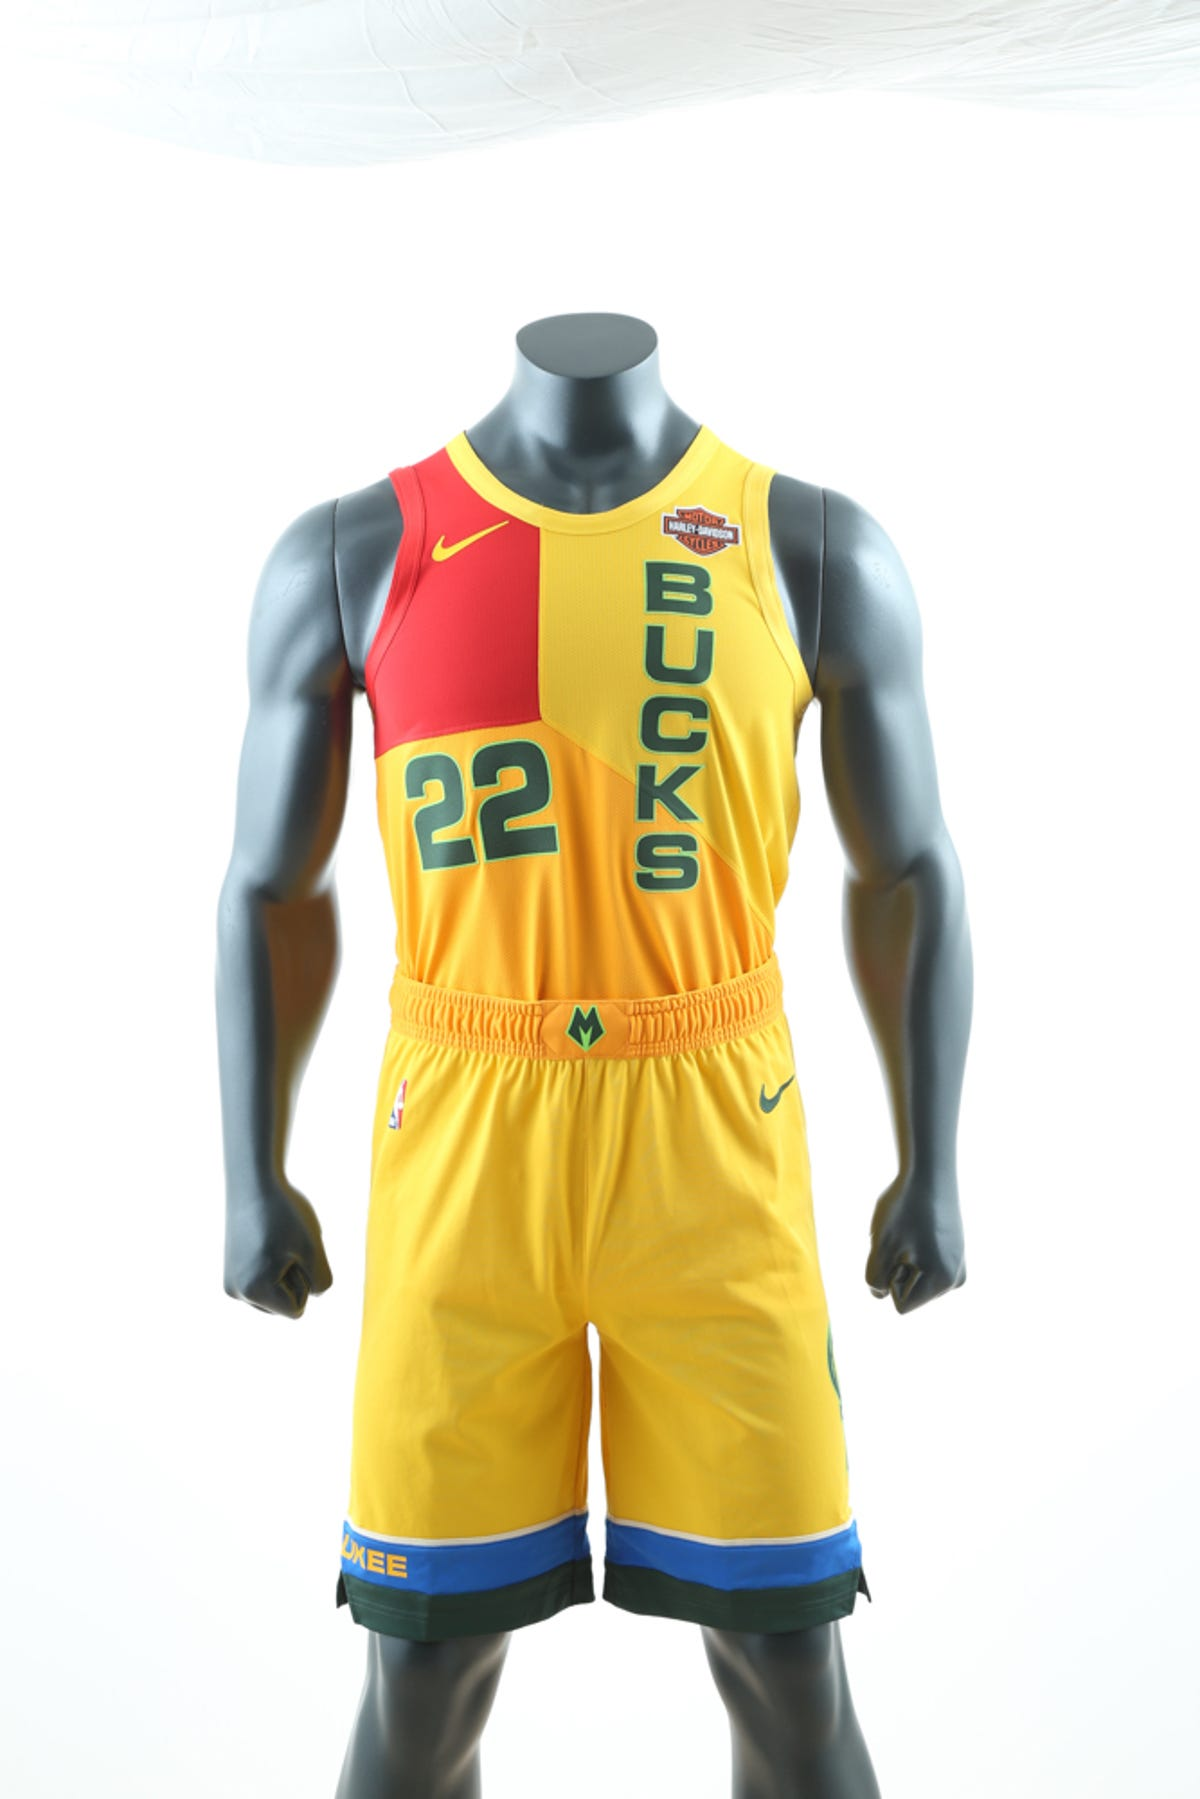 competitive price 94821 f0328 Bucks unveil City Edition uniforms inspired by MECCA floor